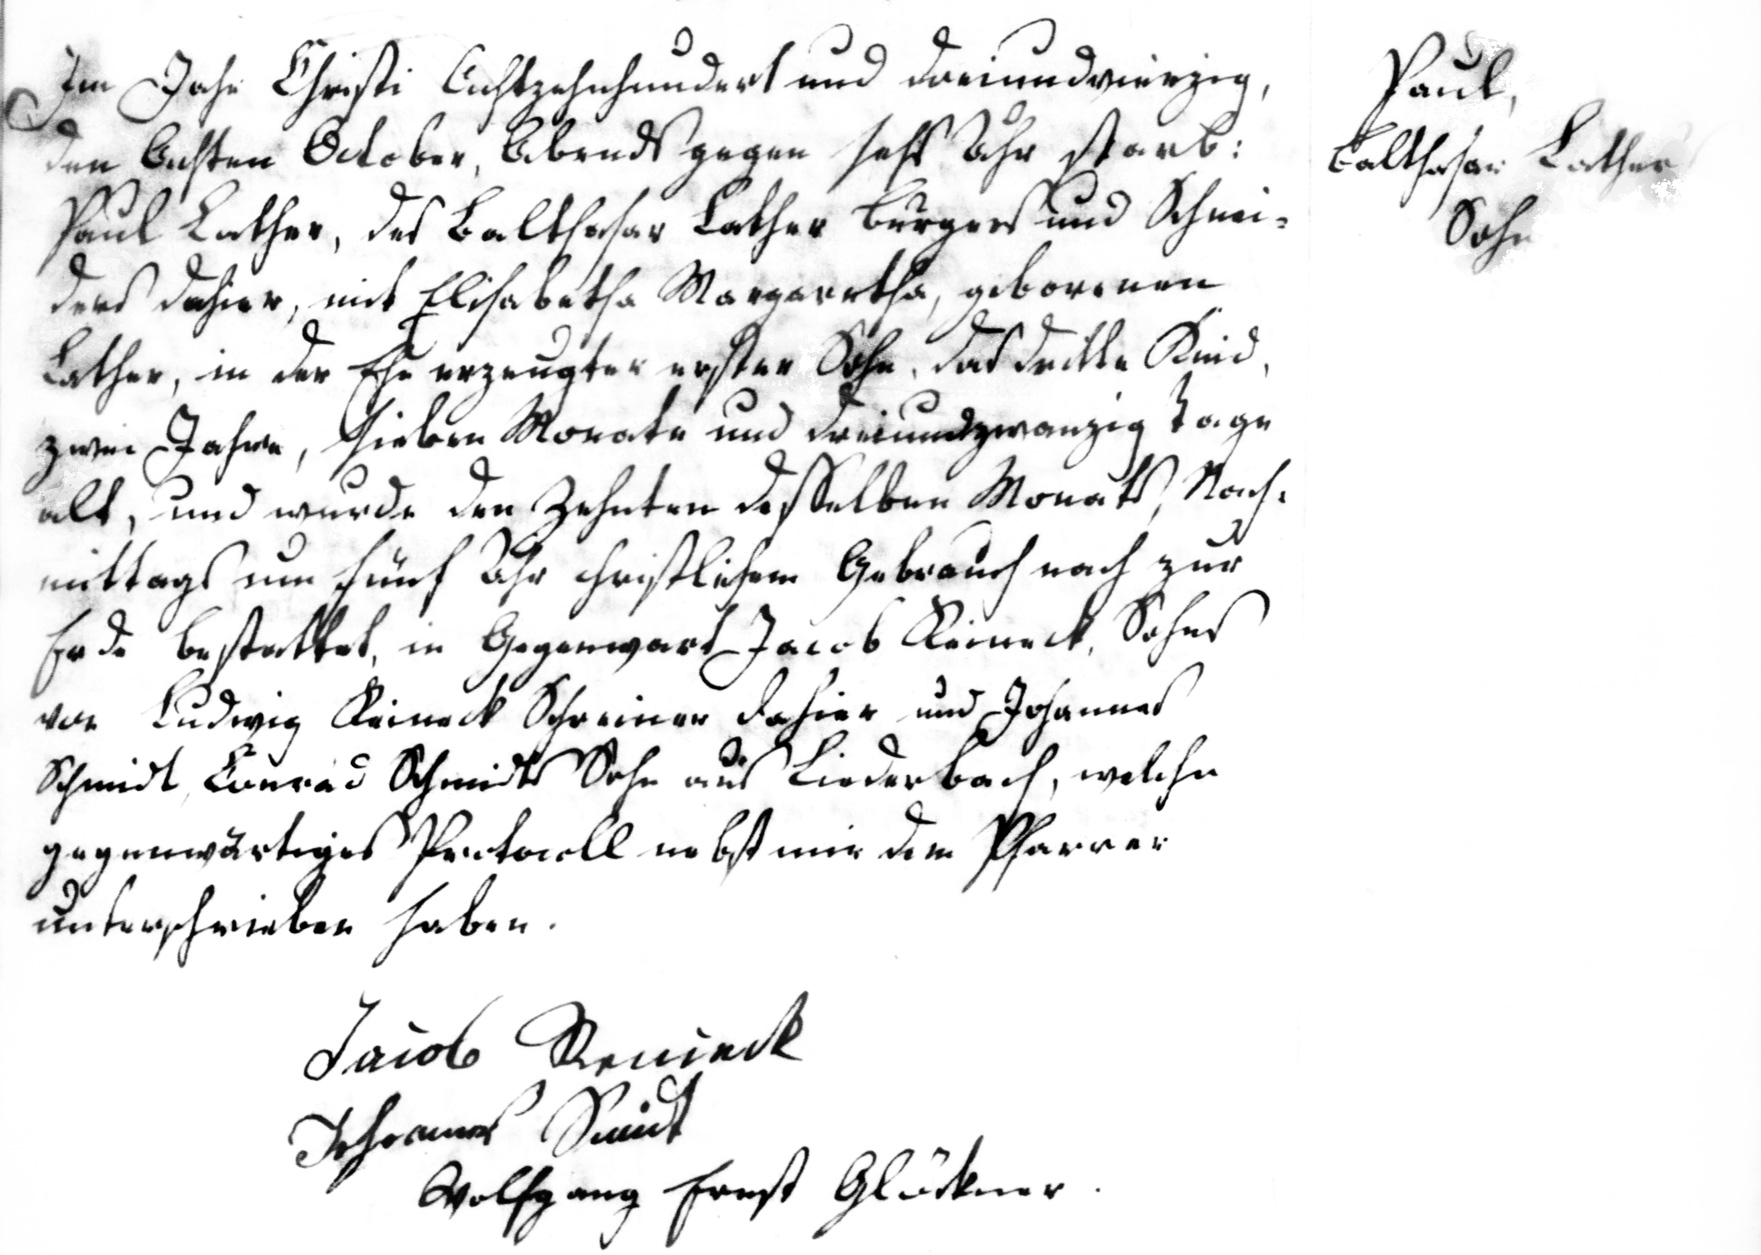 The Death and Burial Record of Paul Lather - 1843